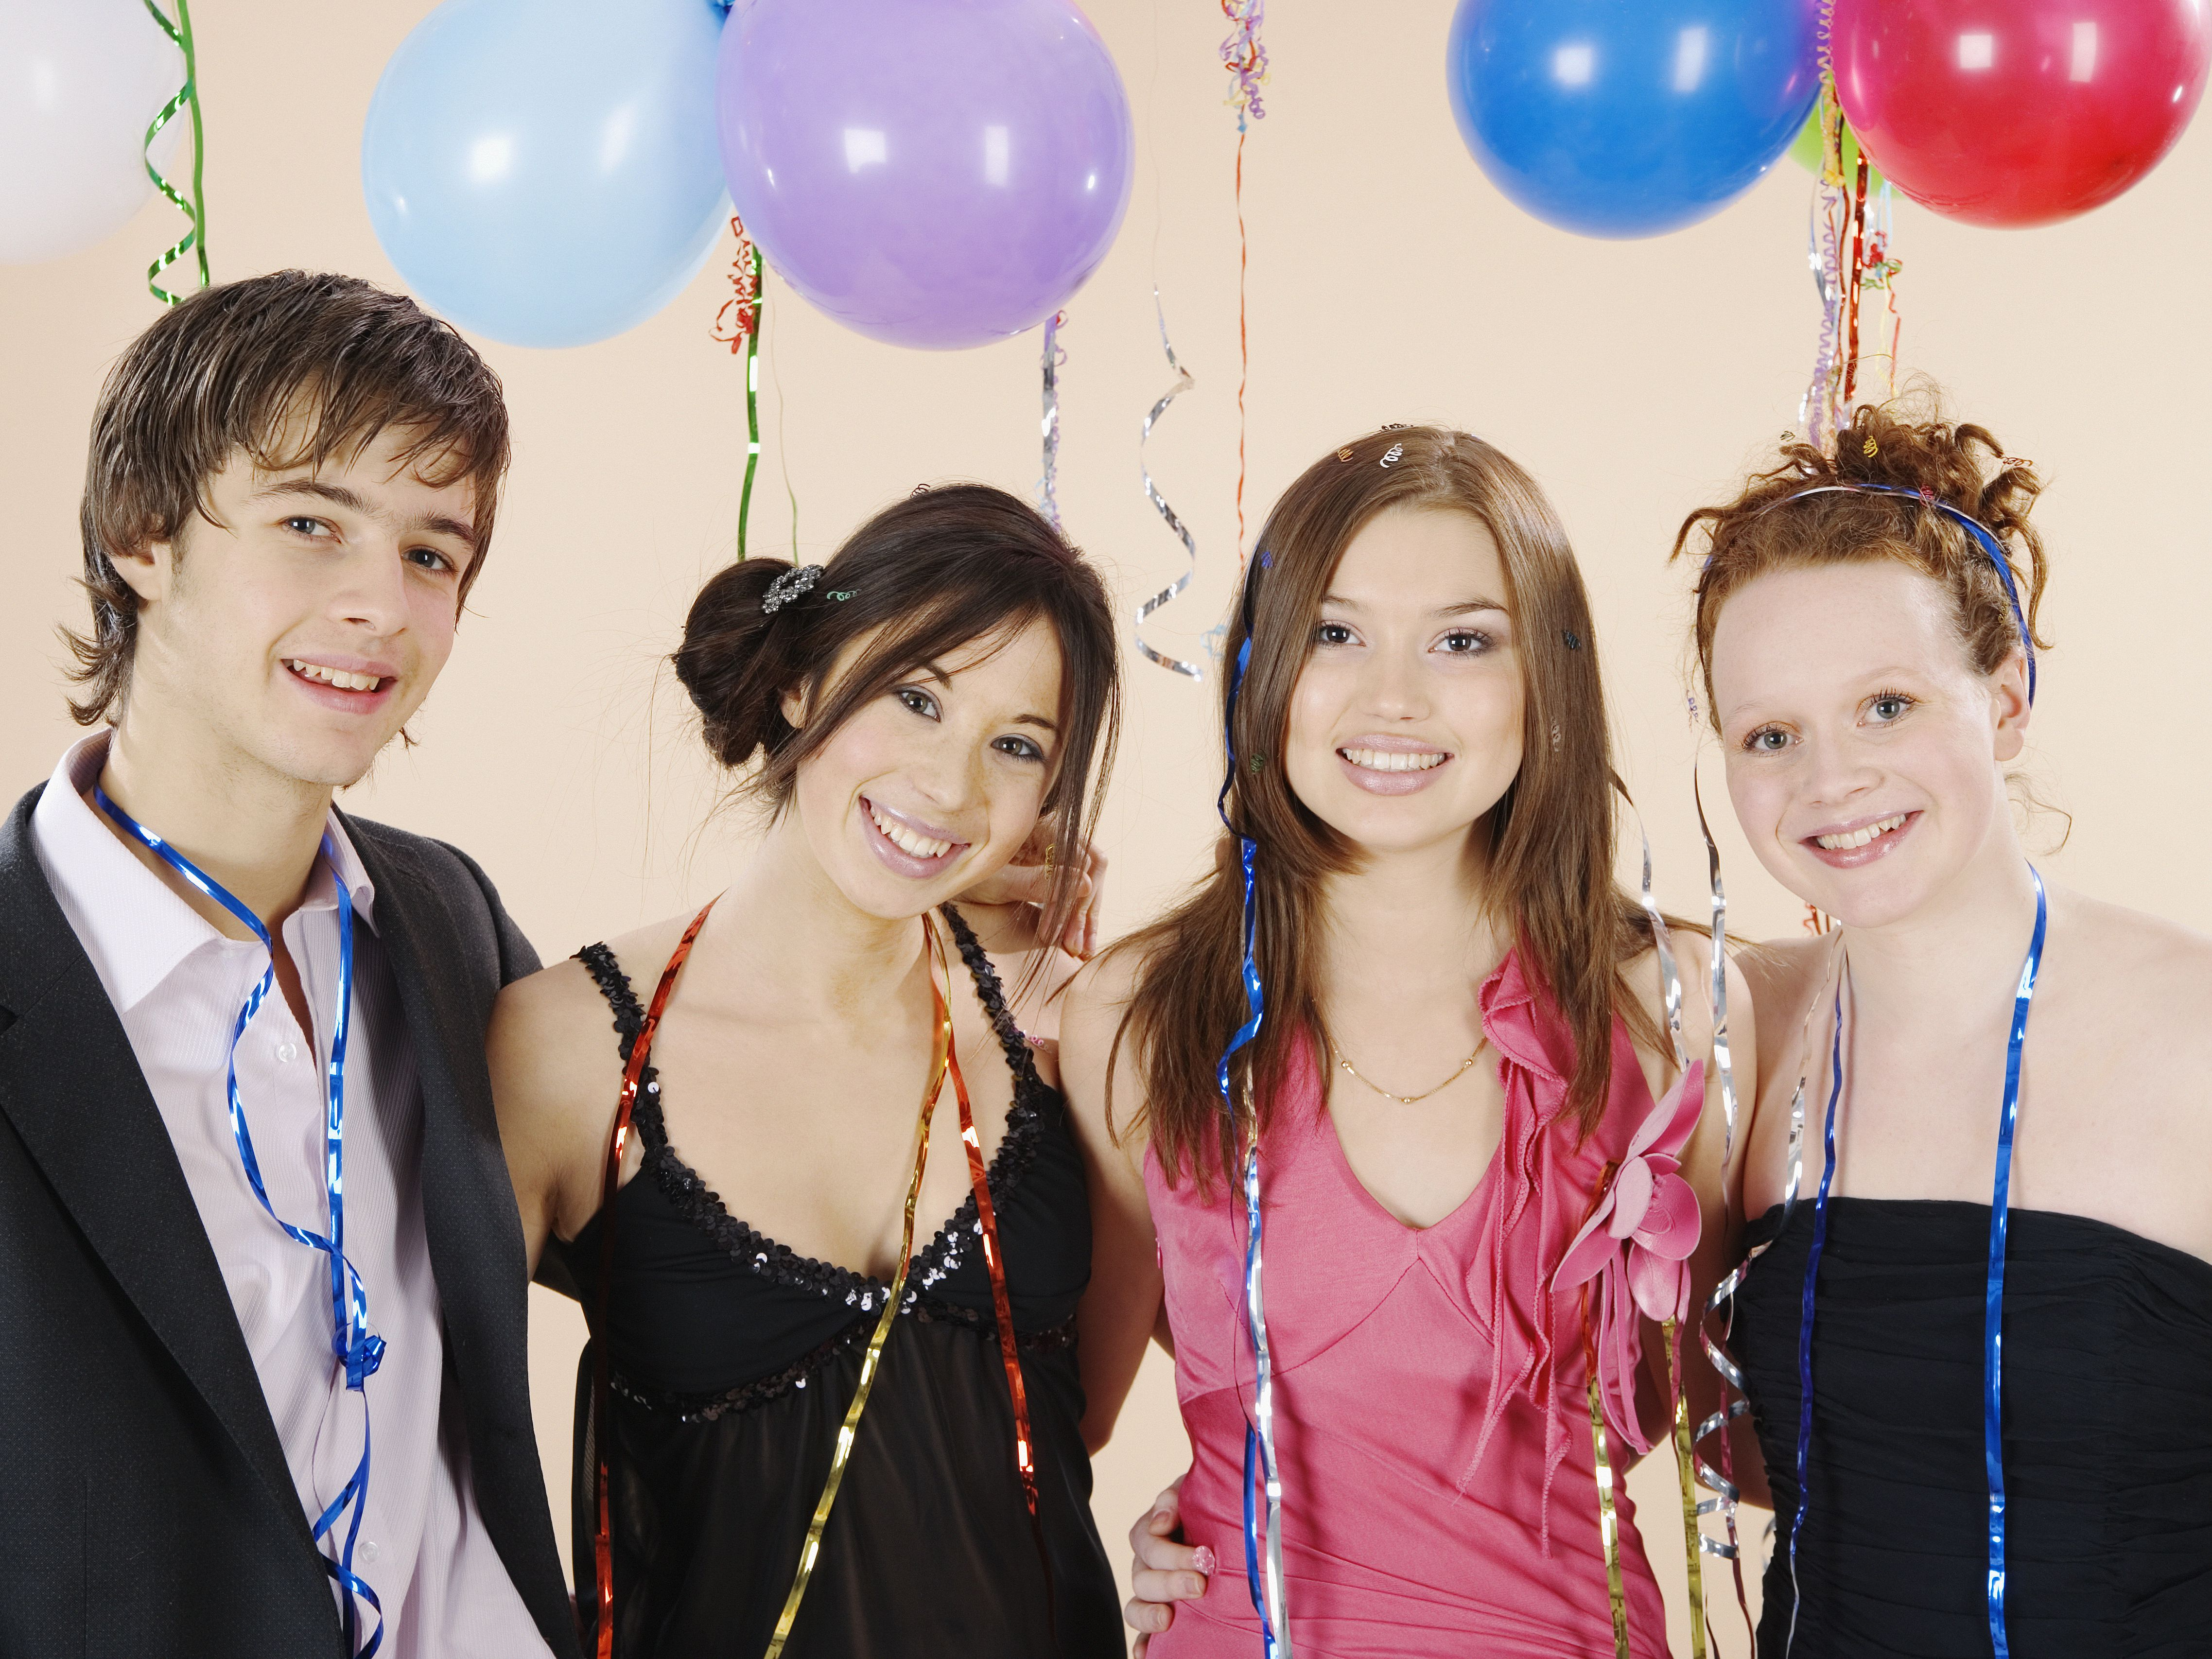 Teen Birthday Party And Event Planner